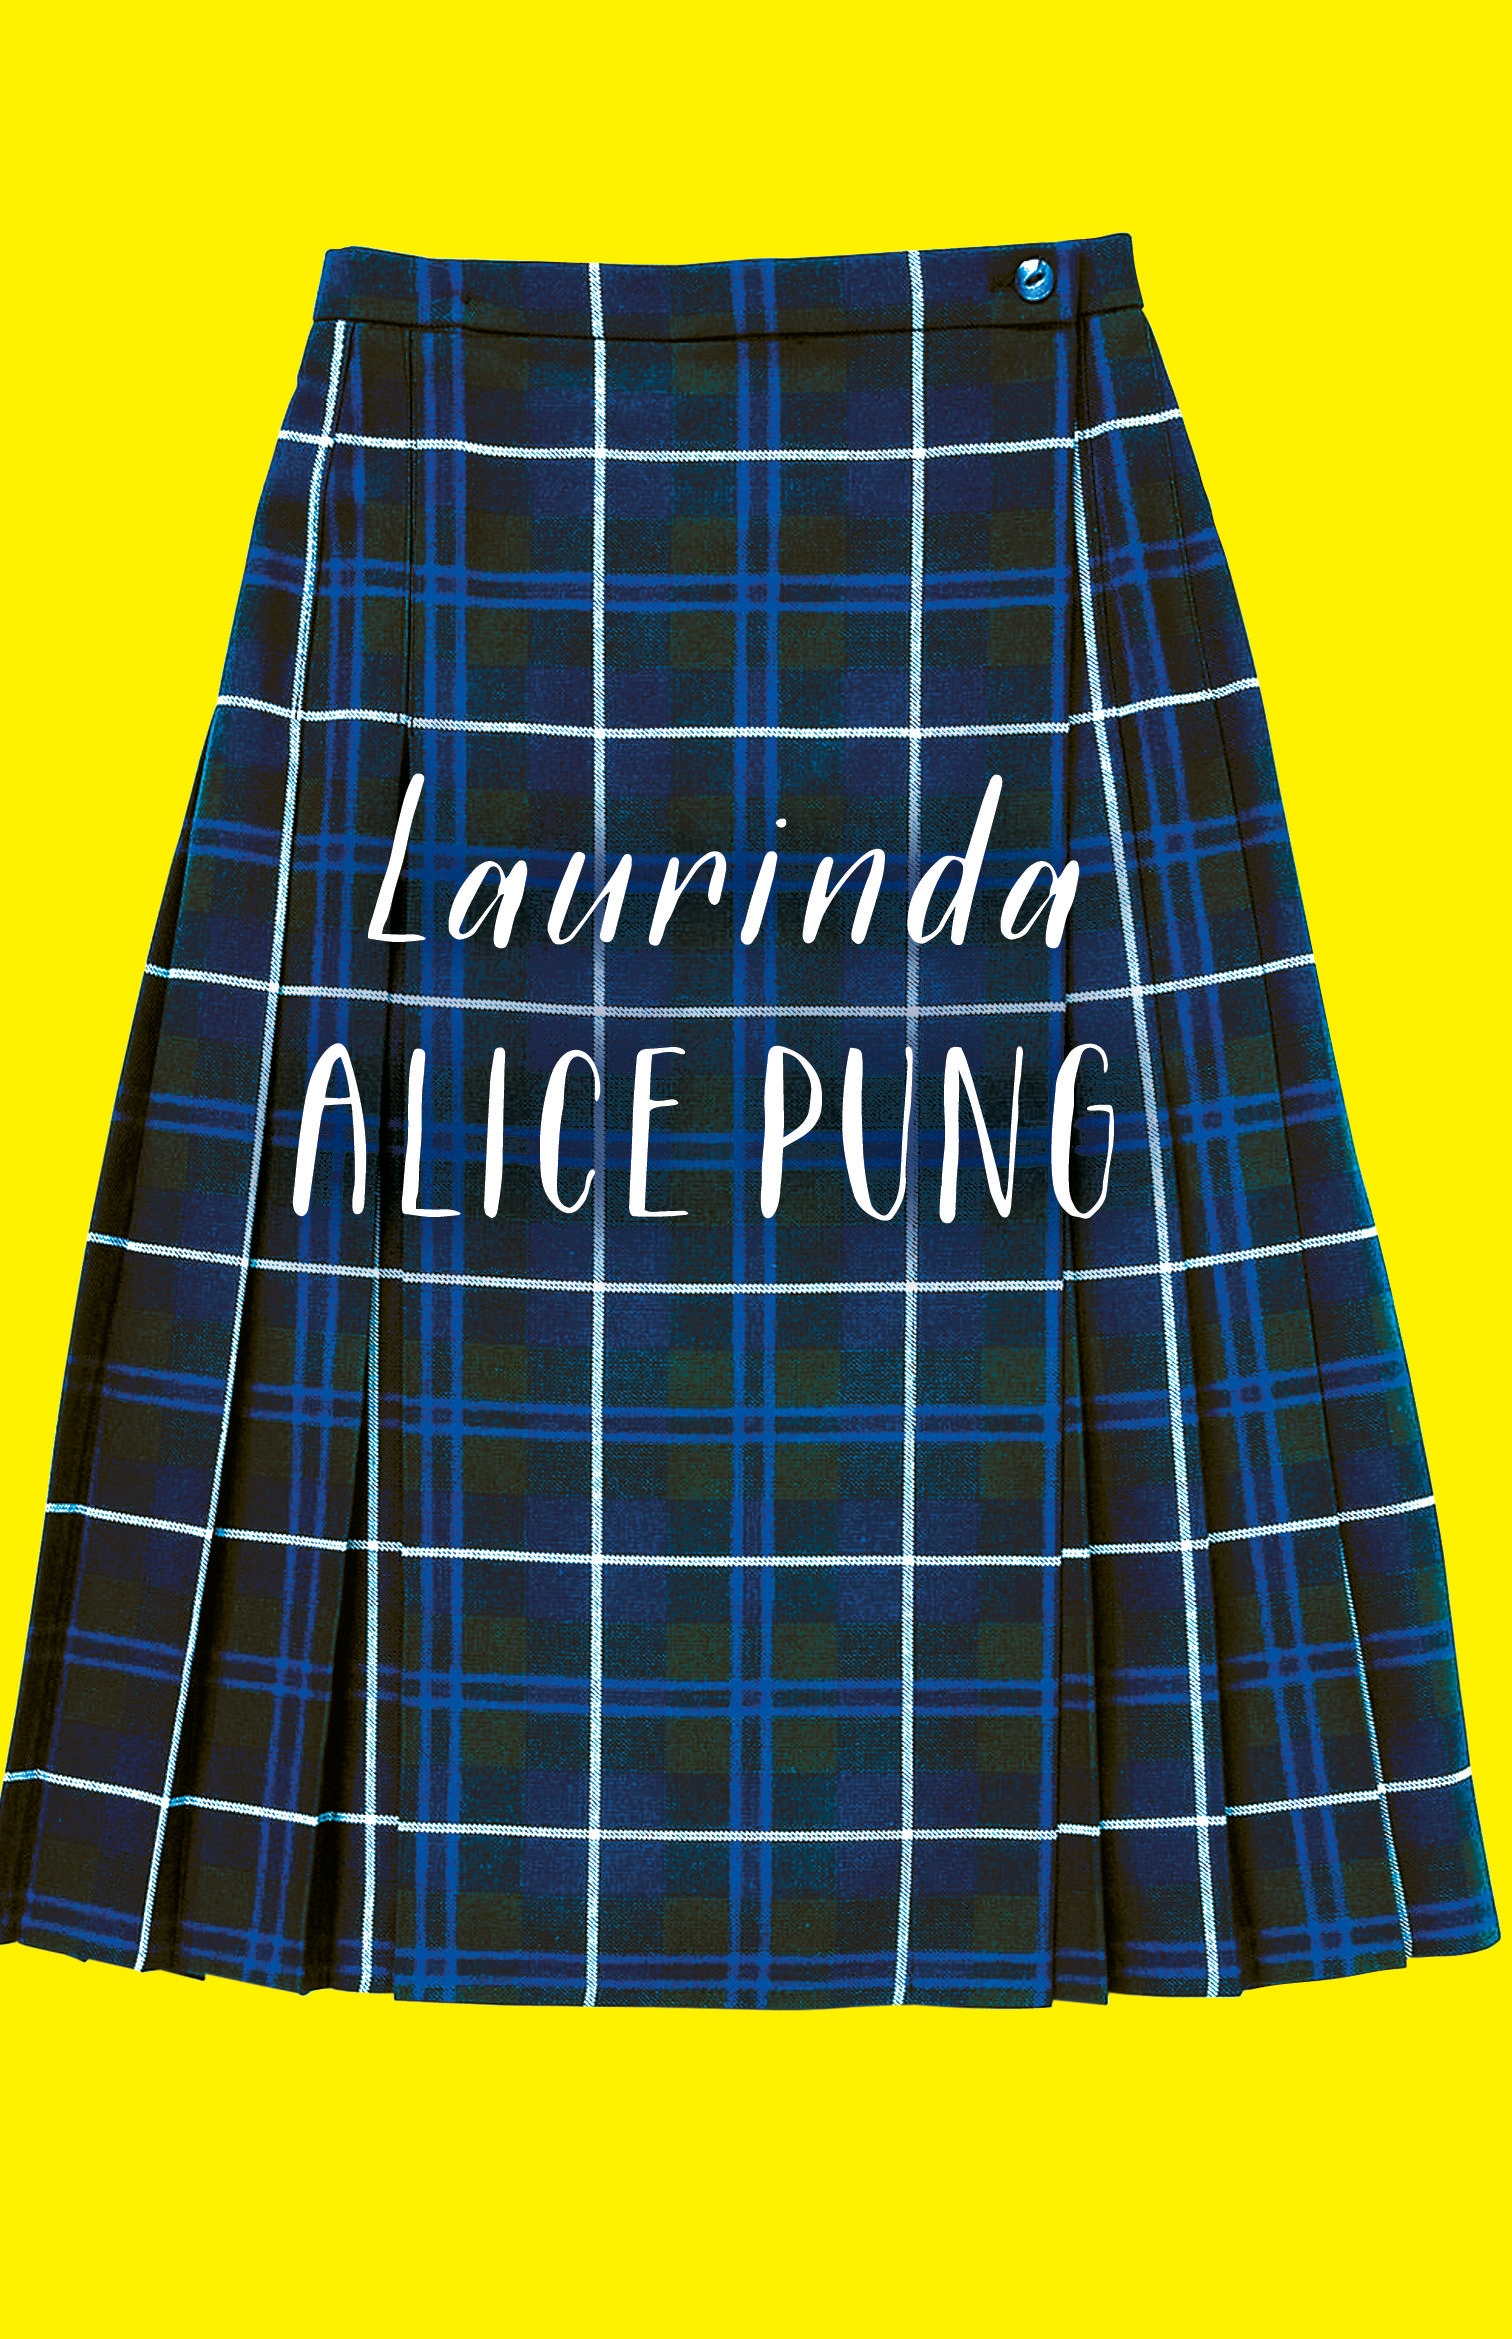 Laurinda by Alice Pung, ISBN: 9781863956925